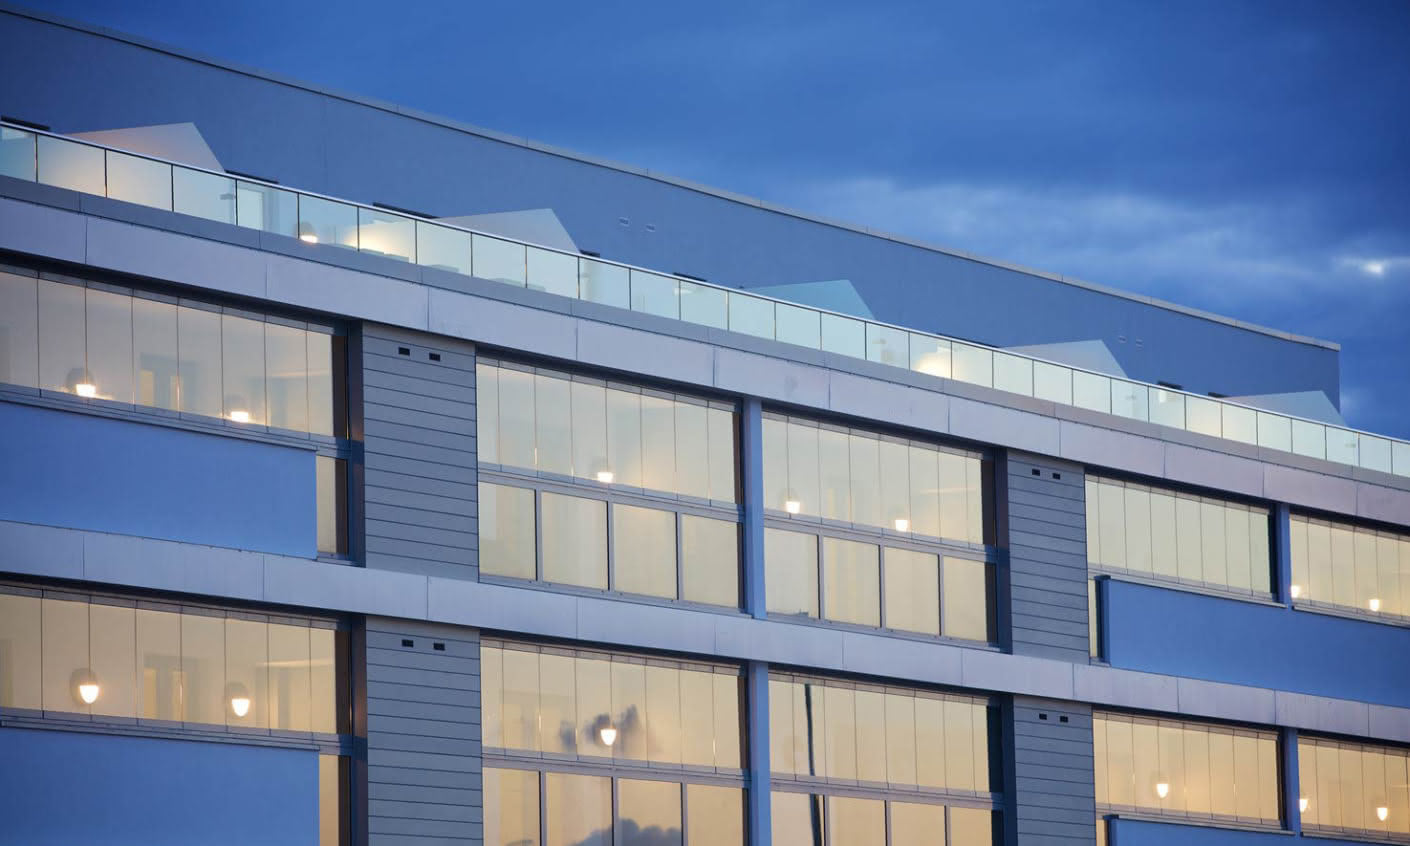 Thanks to the Solarlux balcony and terrace glazing the outside space can also be used during bad weather with no loss of daylight.